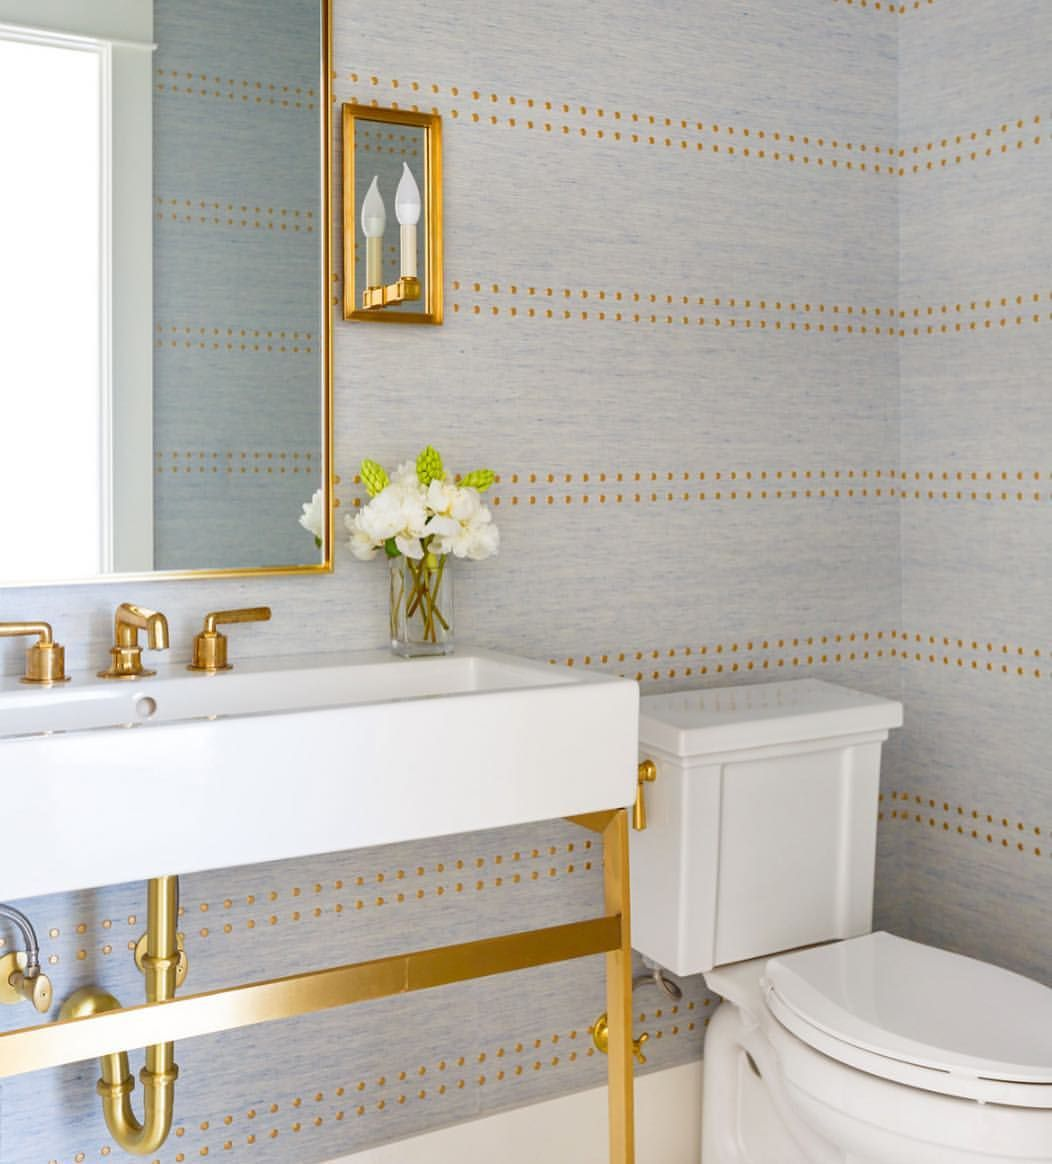 Pin By Jim Bere On A Bath Bathroom Wallpaper Room